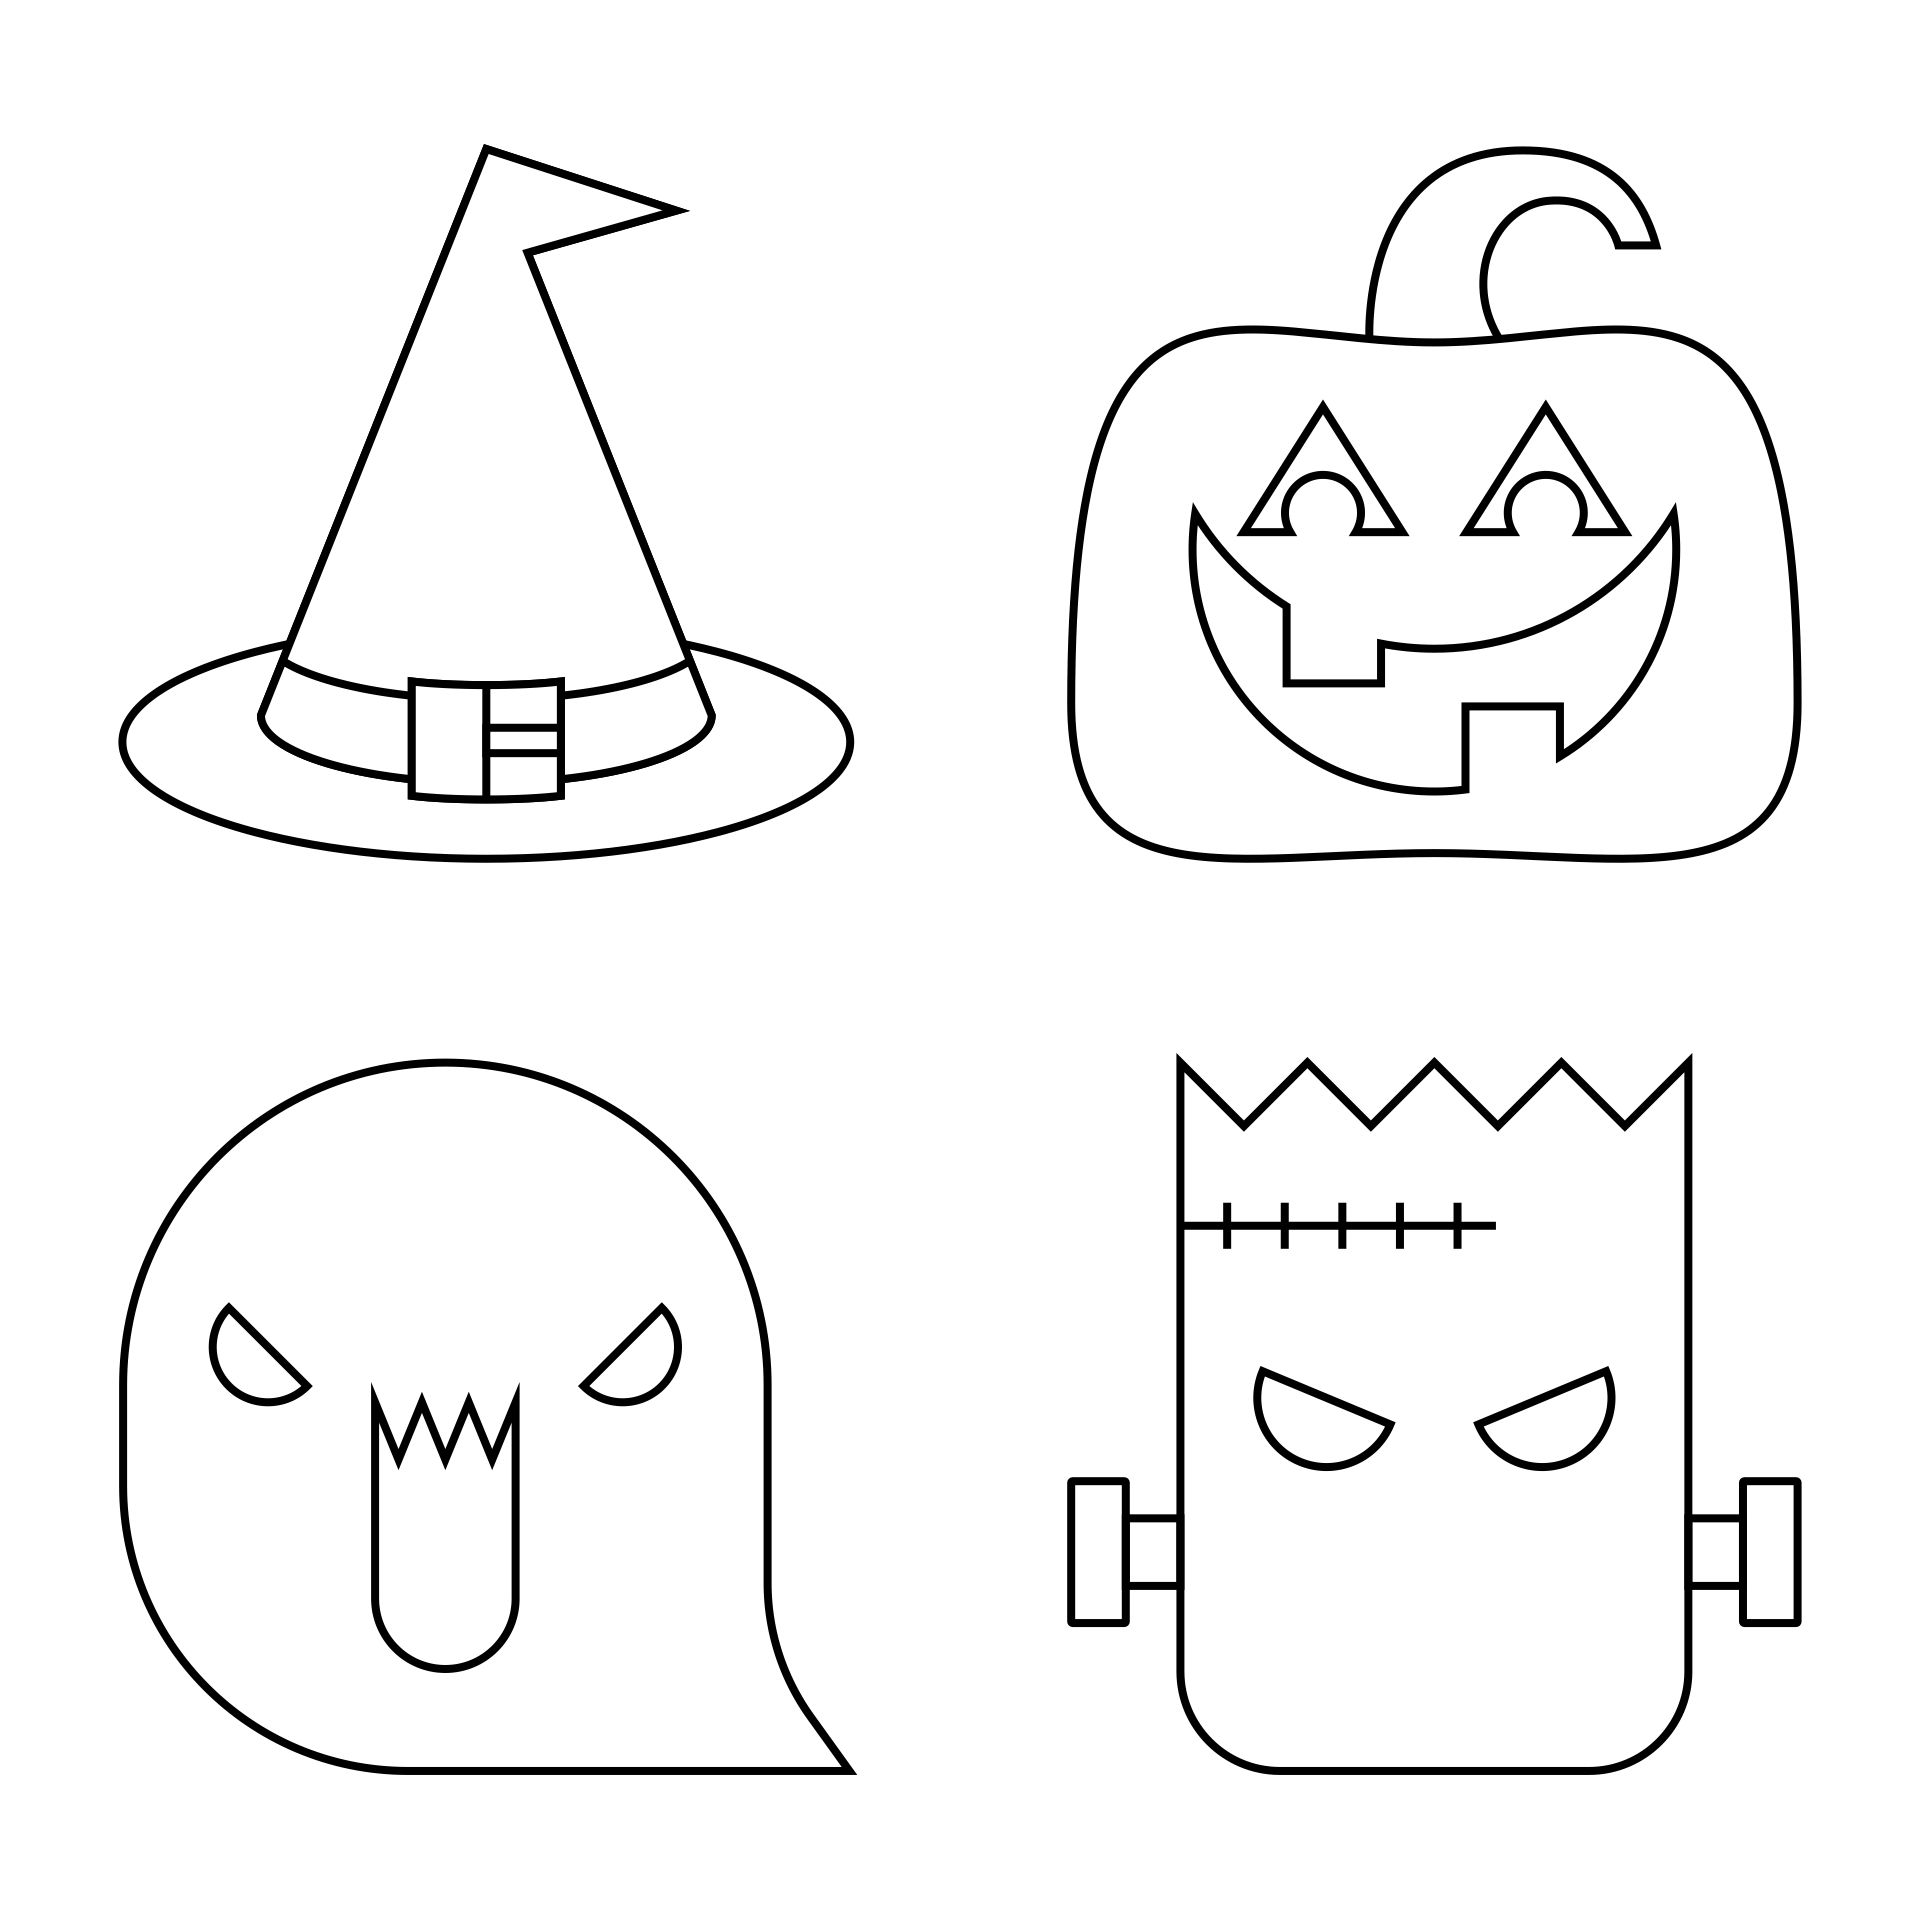 5 Images of Free Printable Halloween Stencils